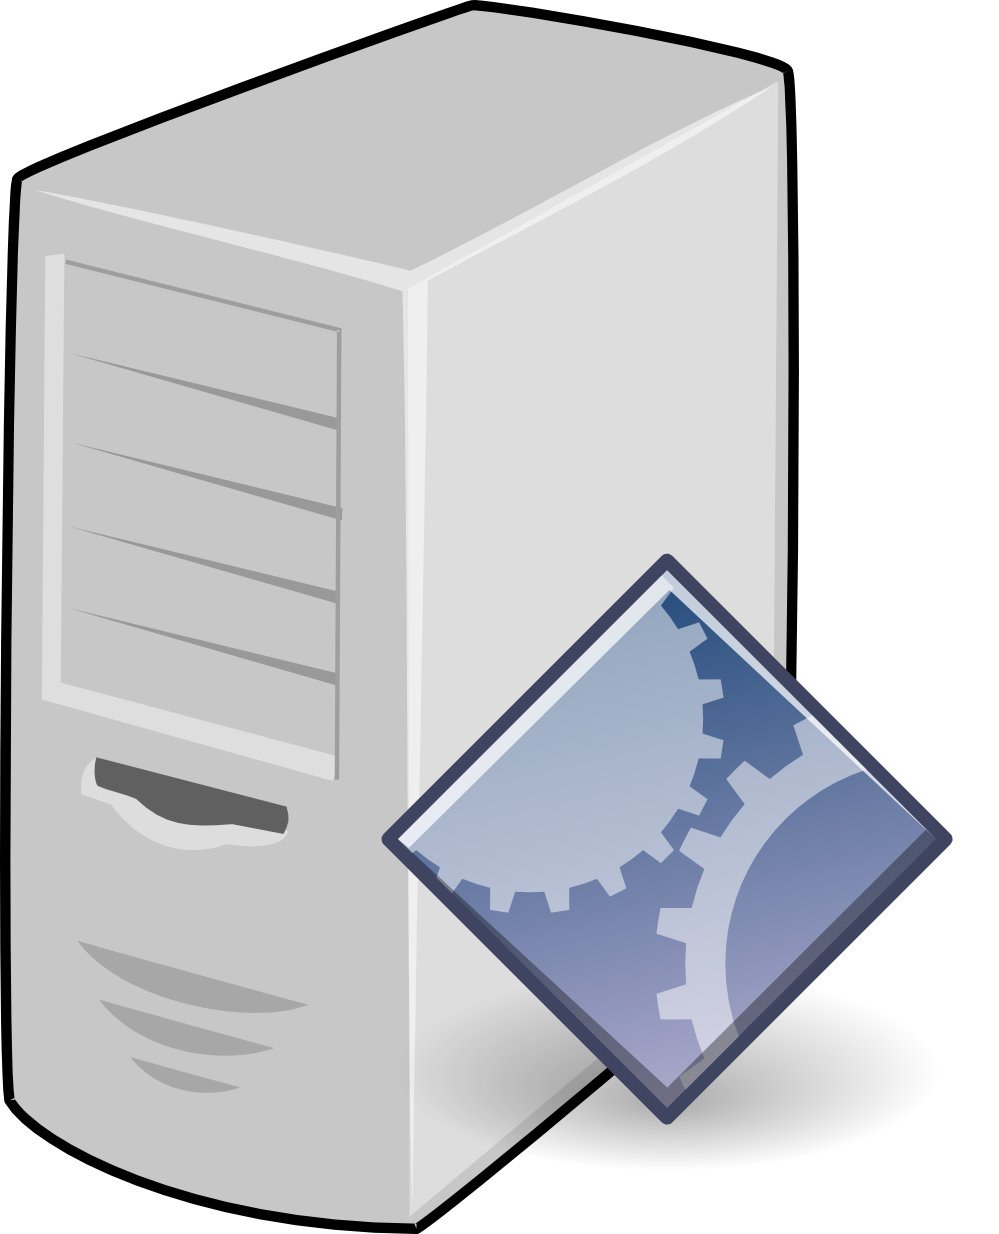 15 Application Server Icon Images